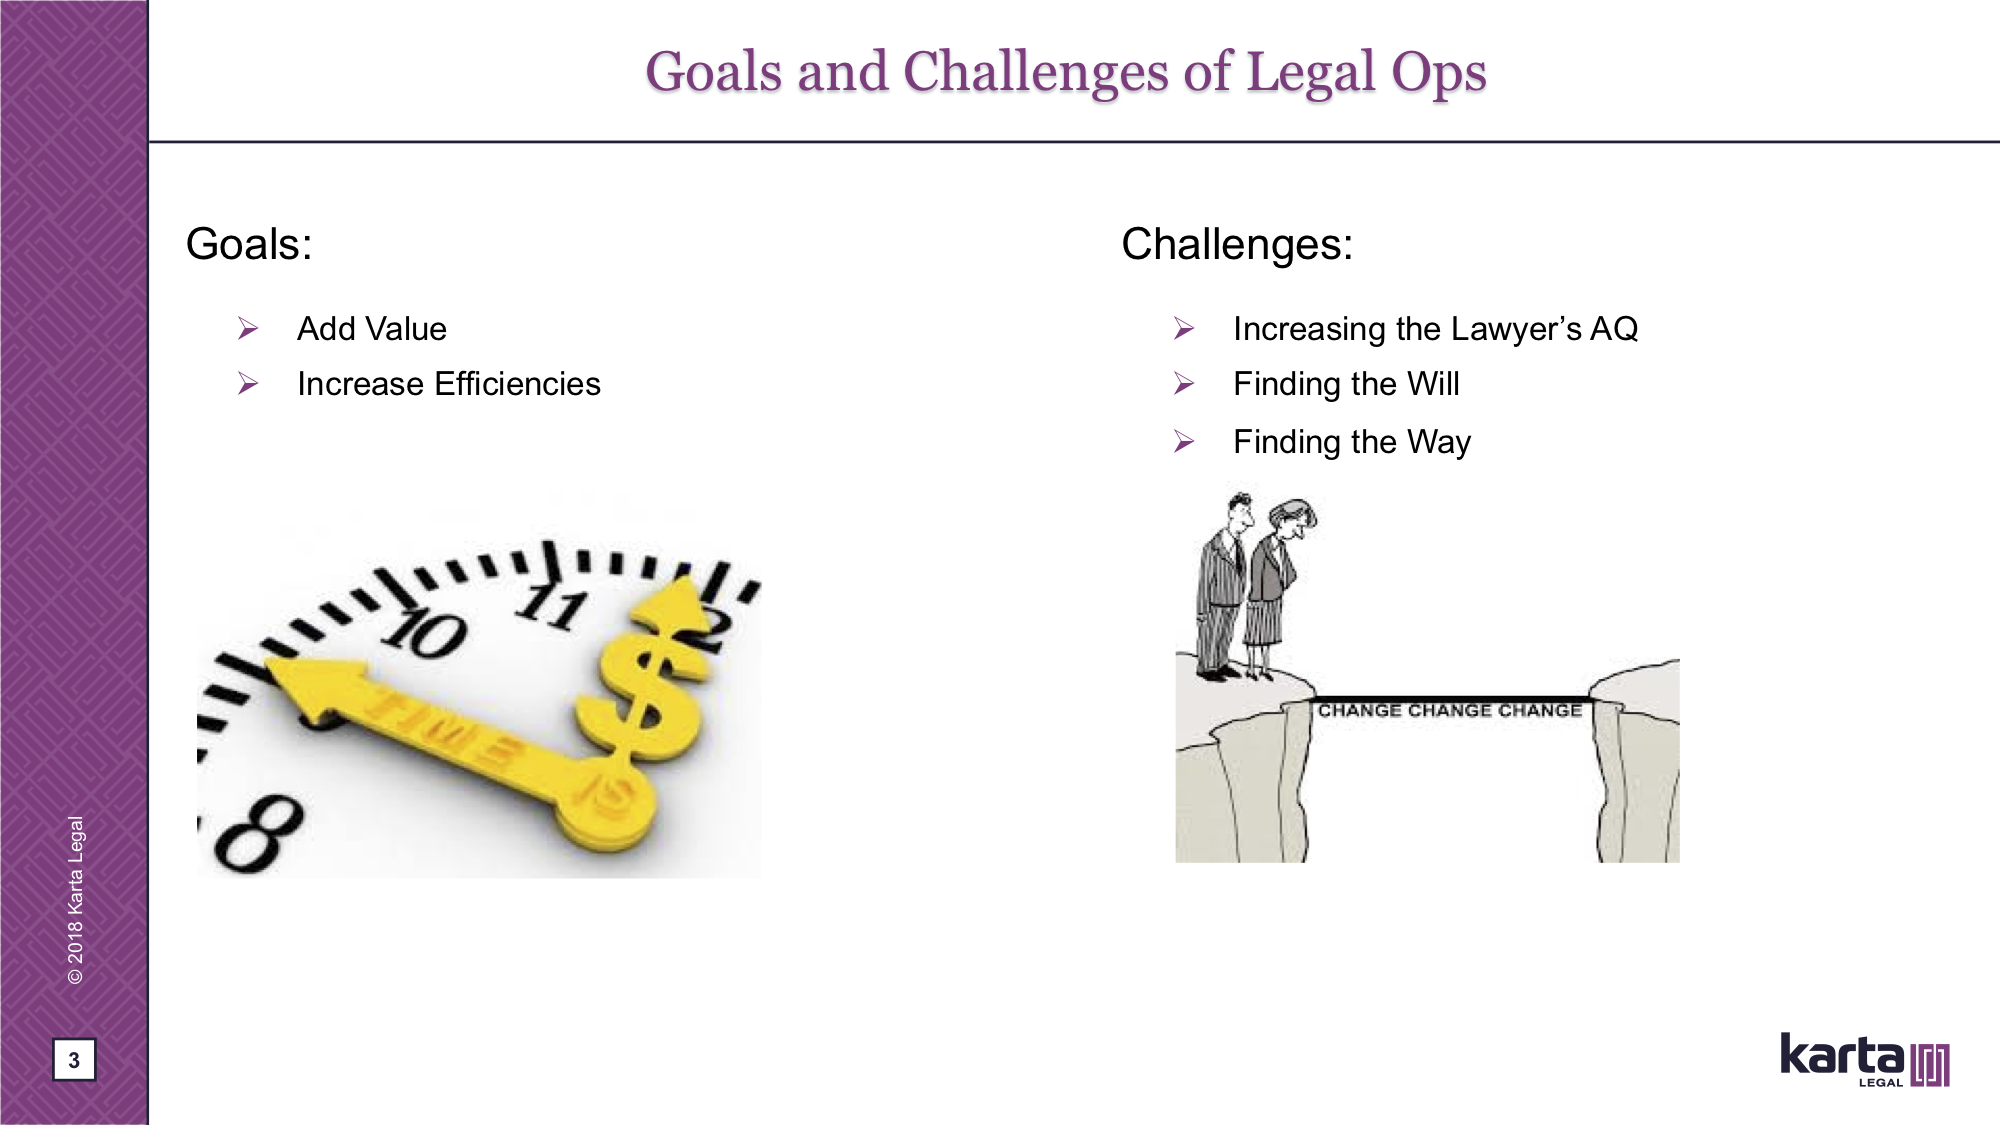 Goals and Challenge of Legal Ops